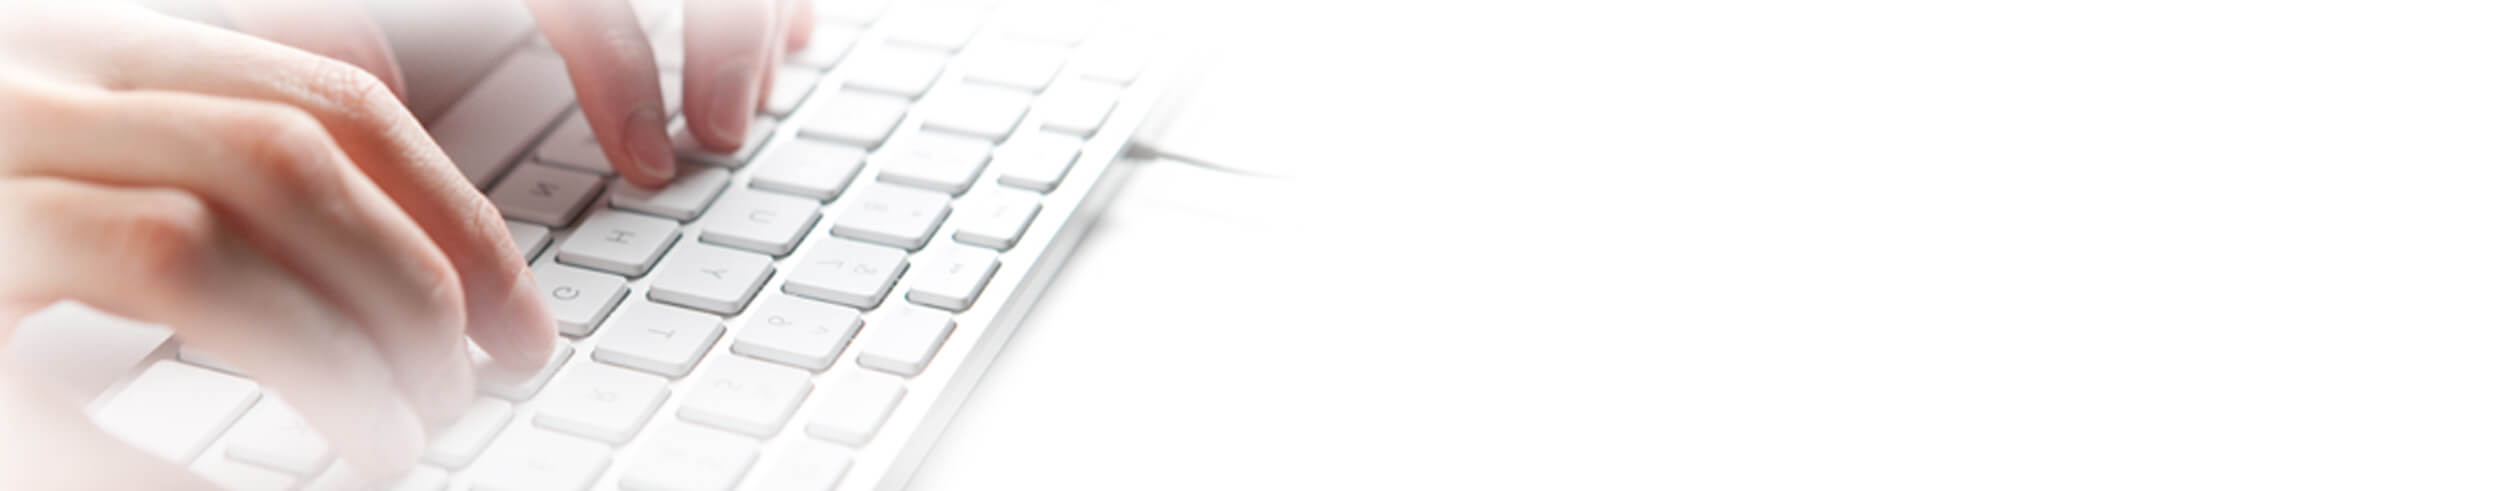 Kairos Institute header background Blog Keyboard